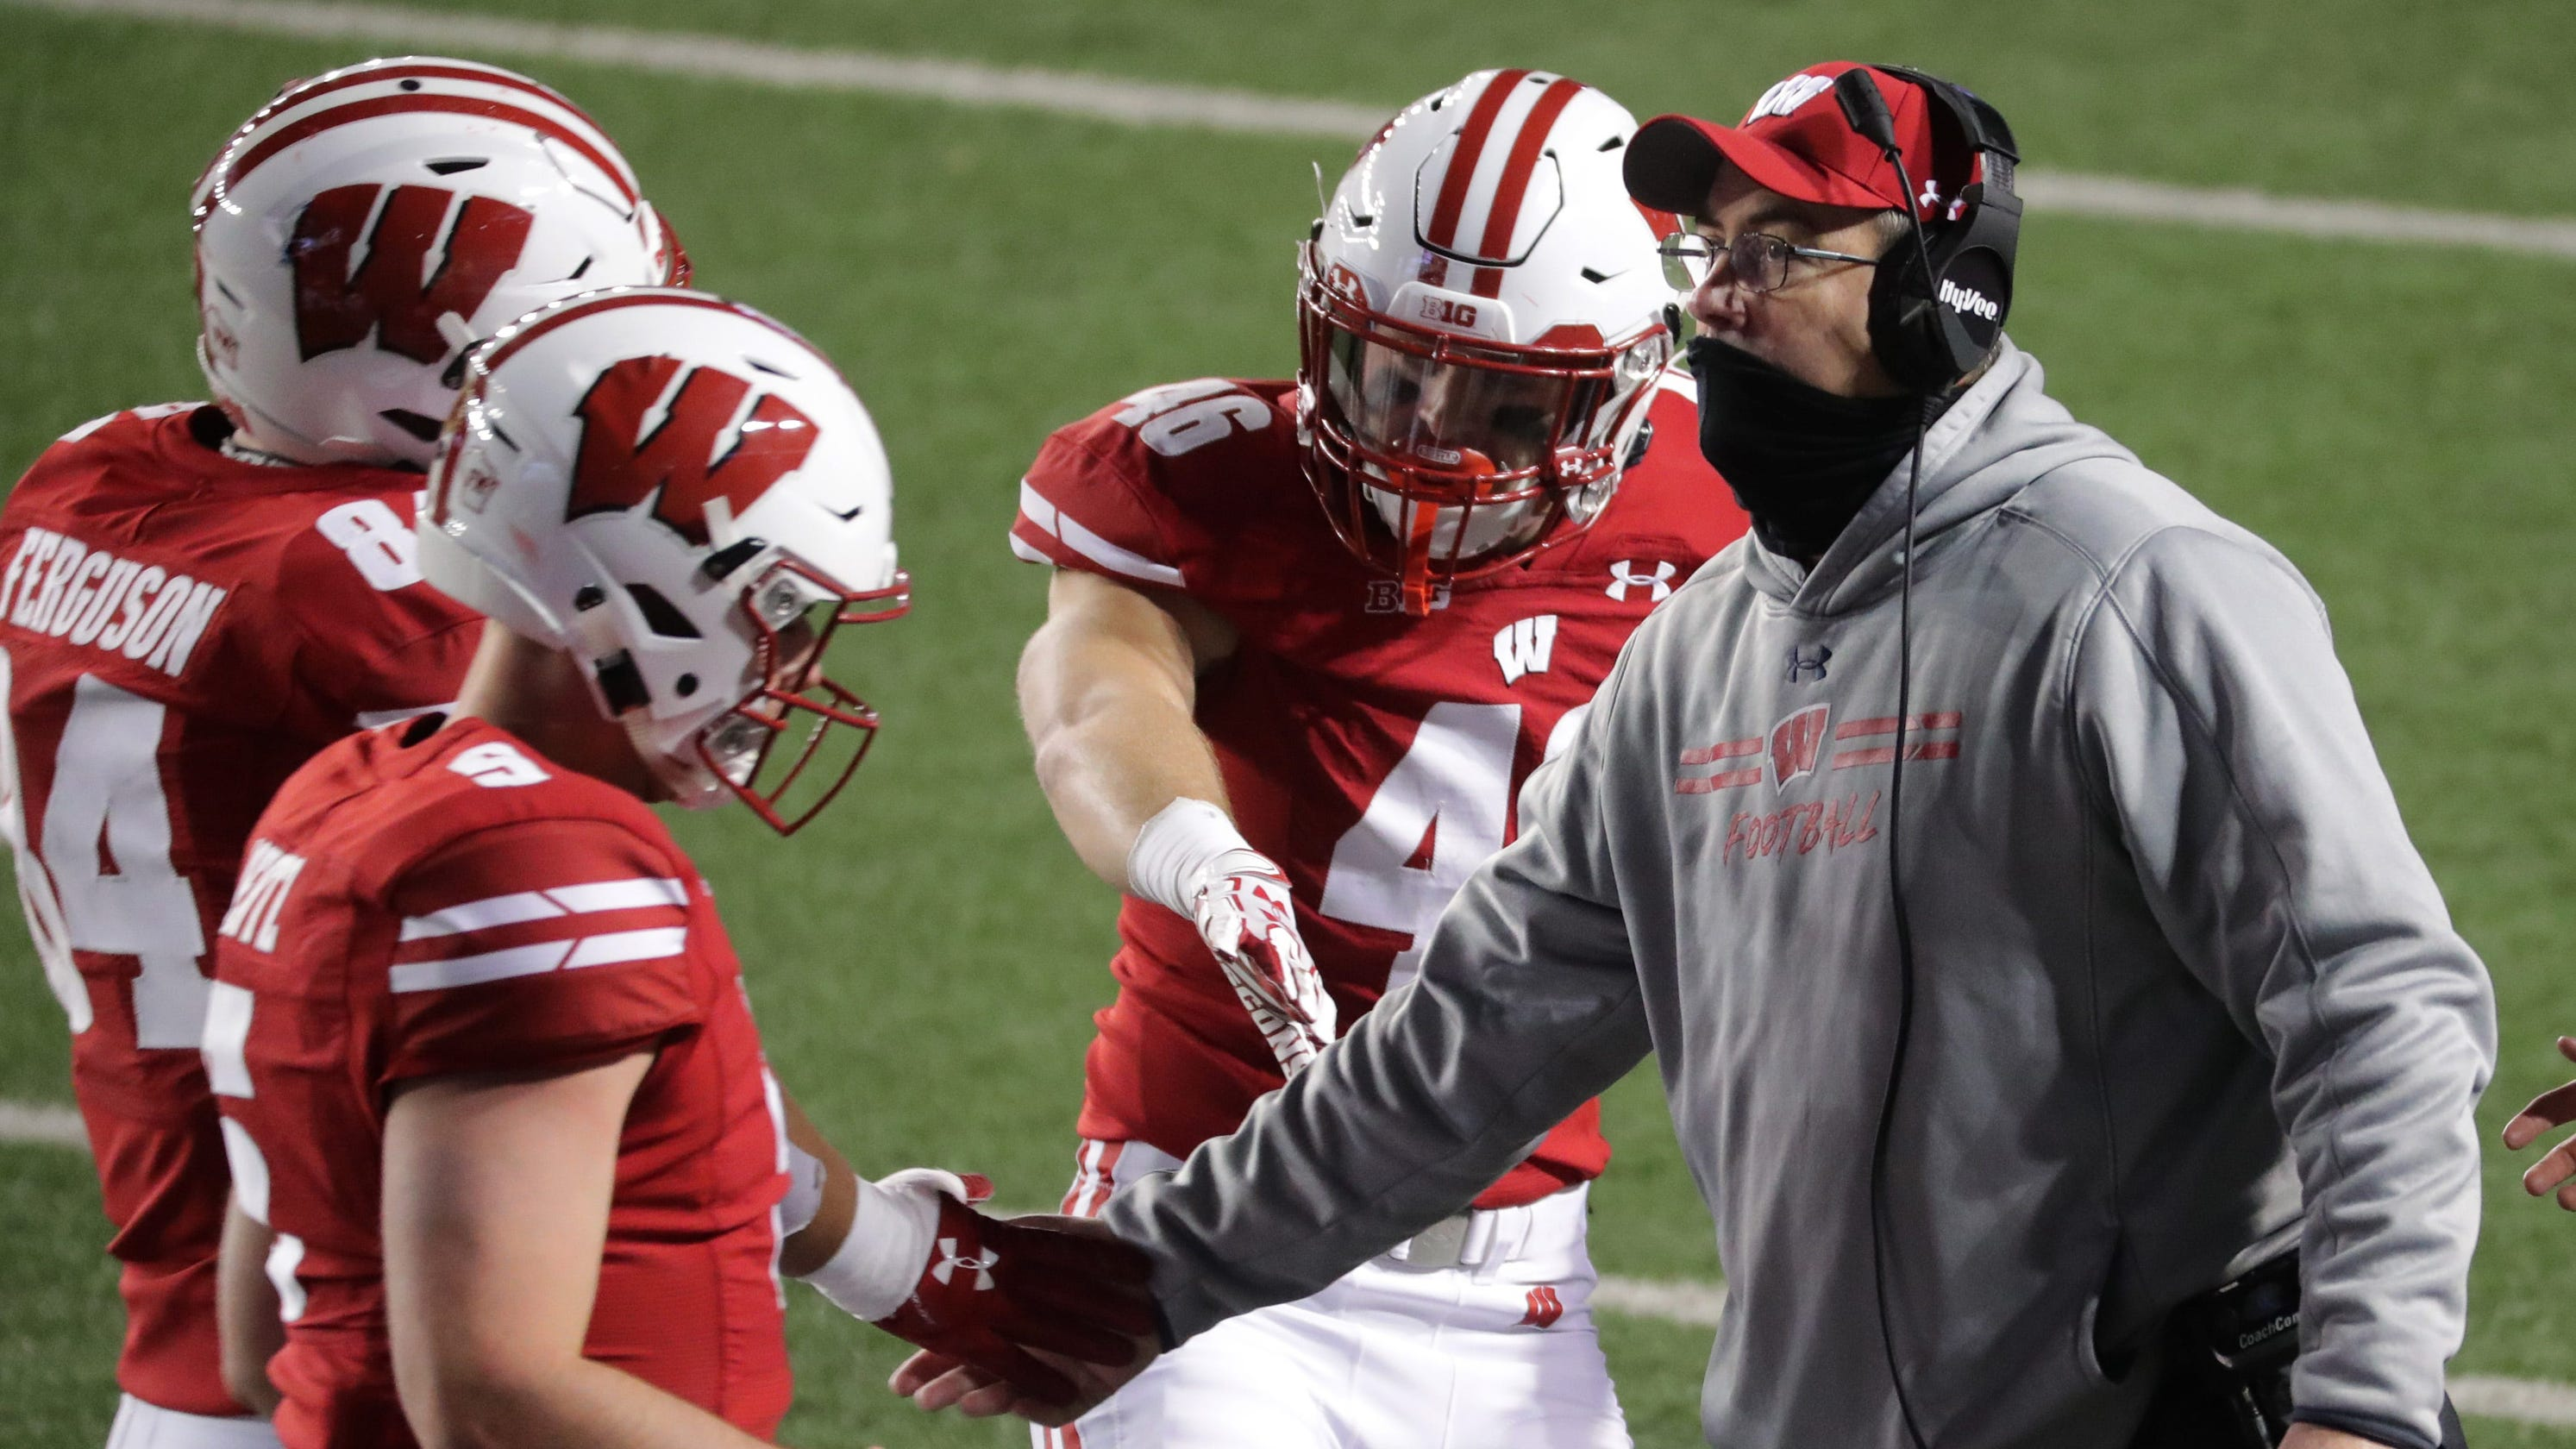 Wisconsin football program up to 16 active COVID-19 cases among players and coaches